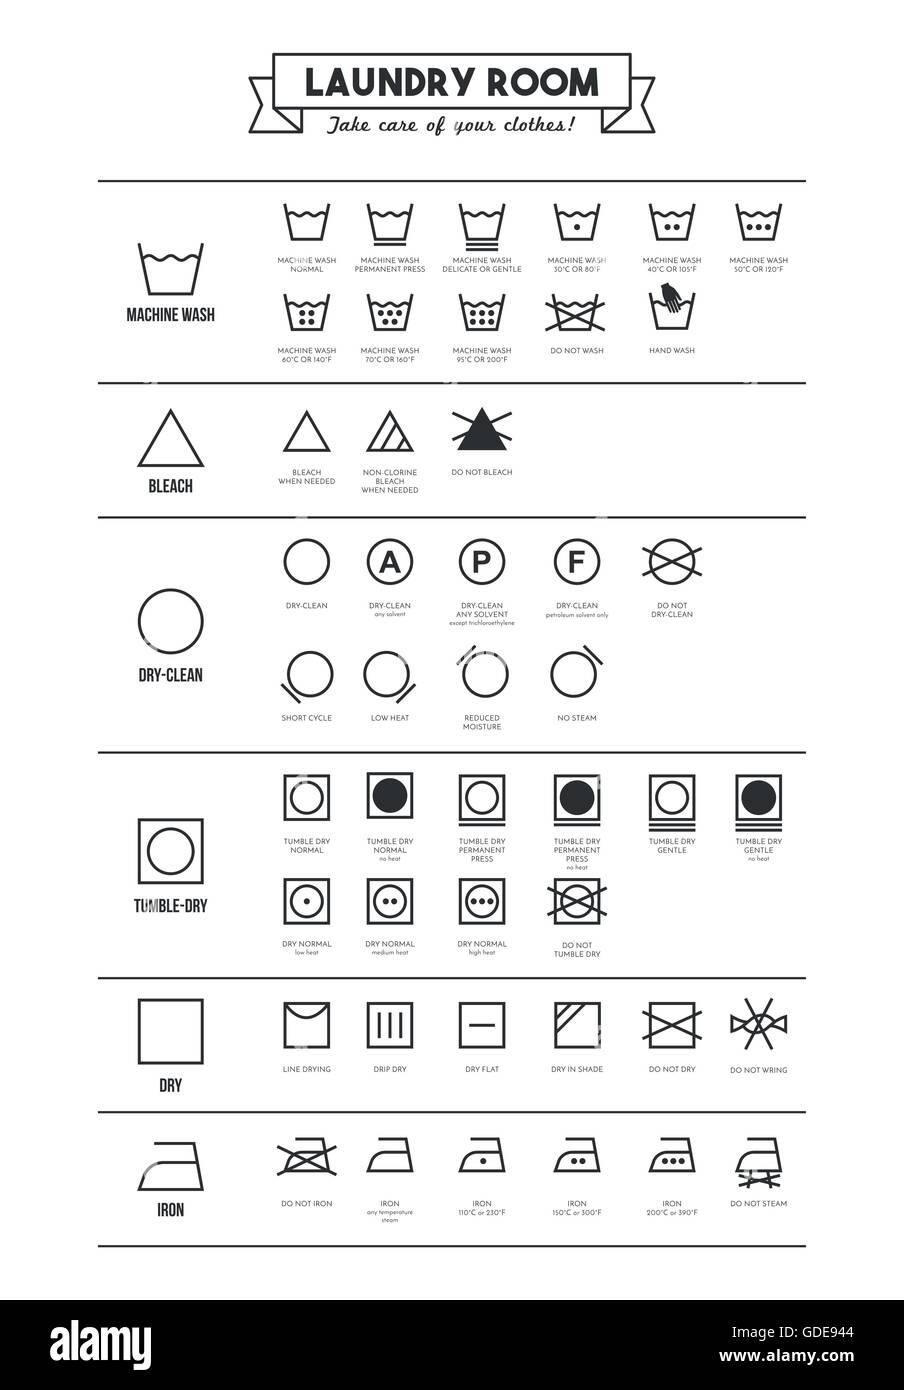 Laundry Symbols Poster Laundry And Washing Clothes Symbols With Texts Poster Stock Vector